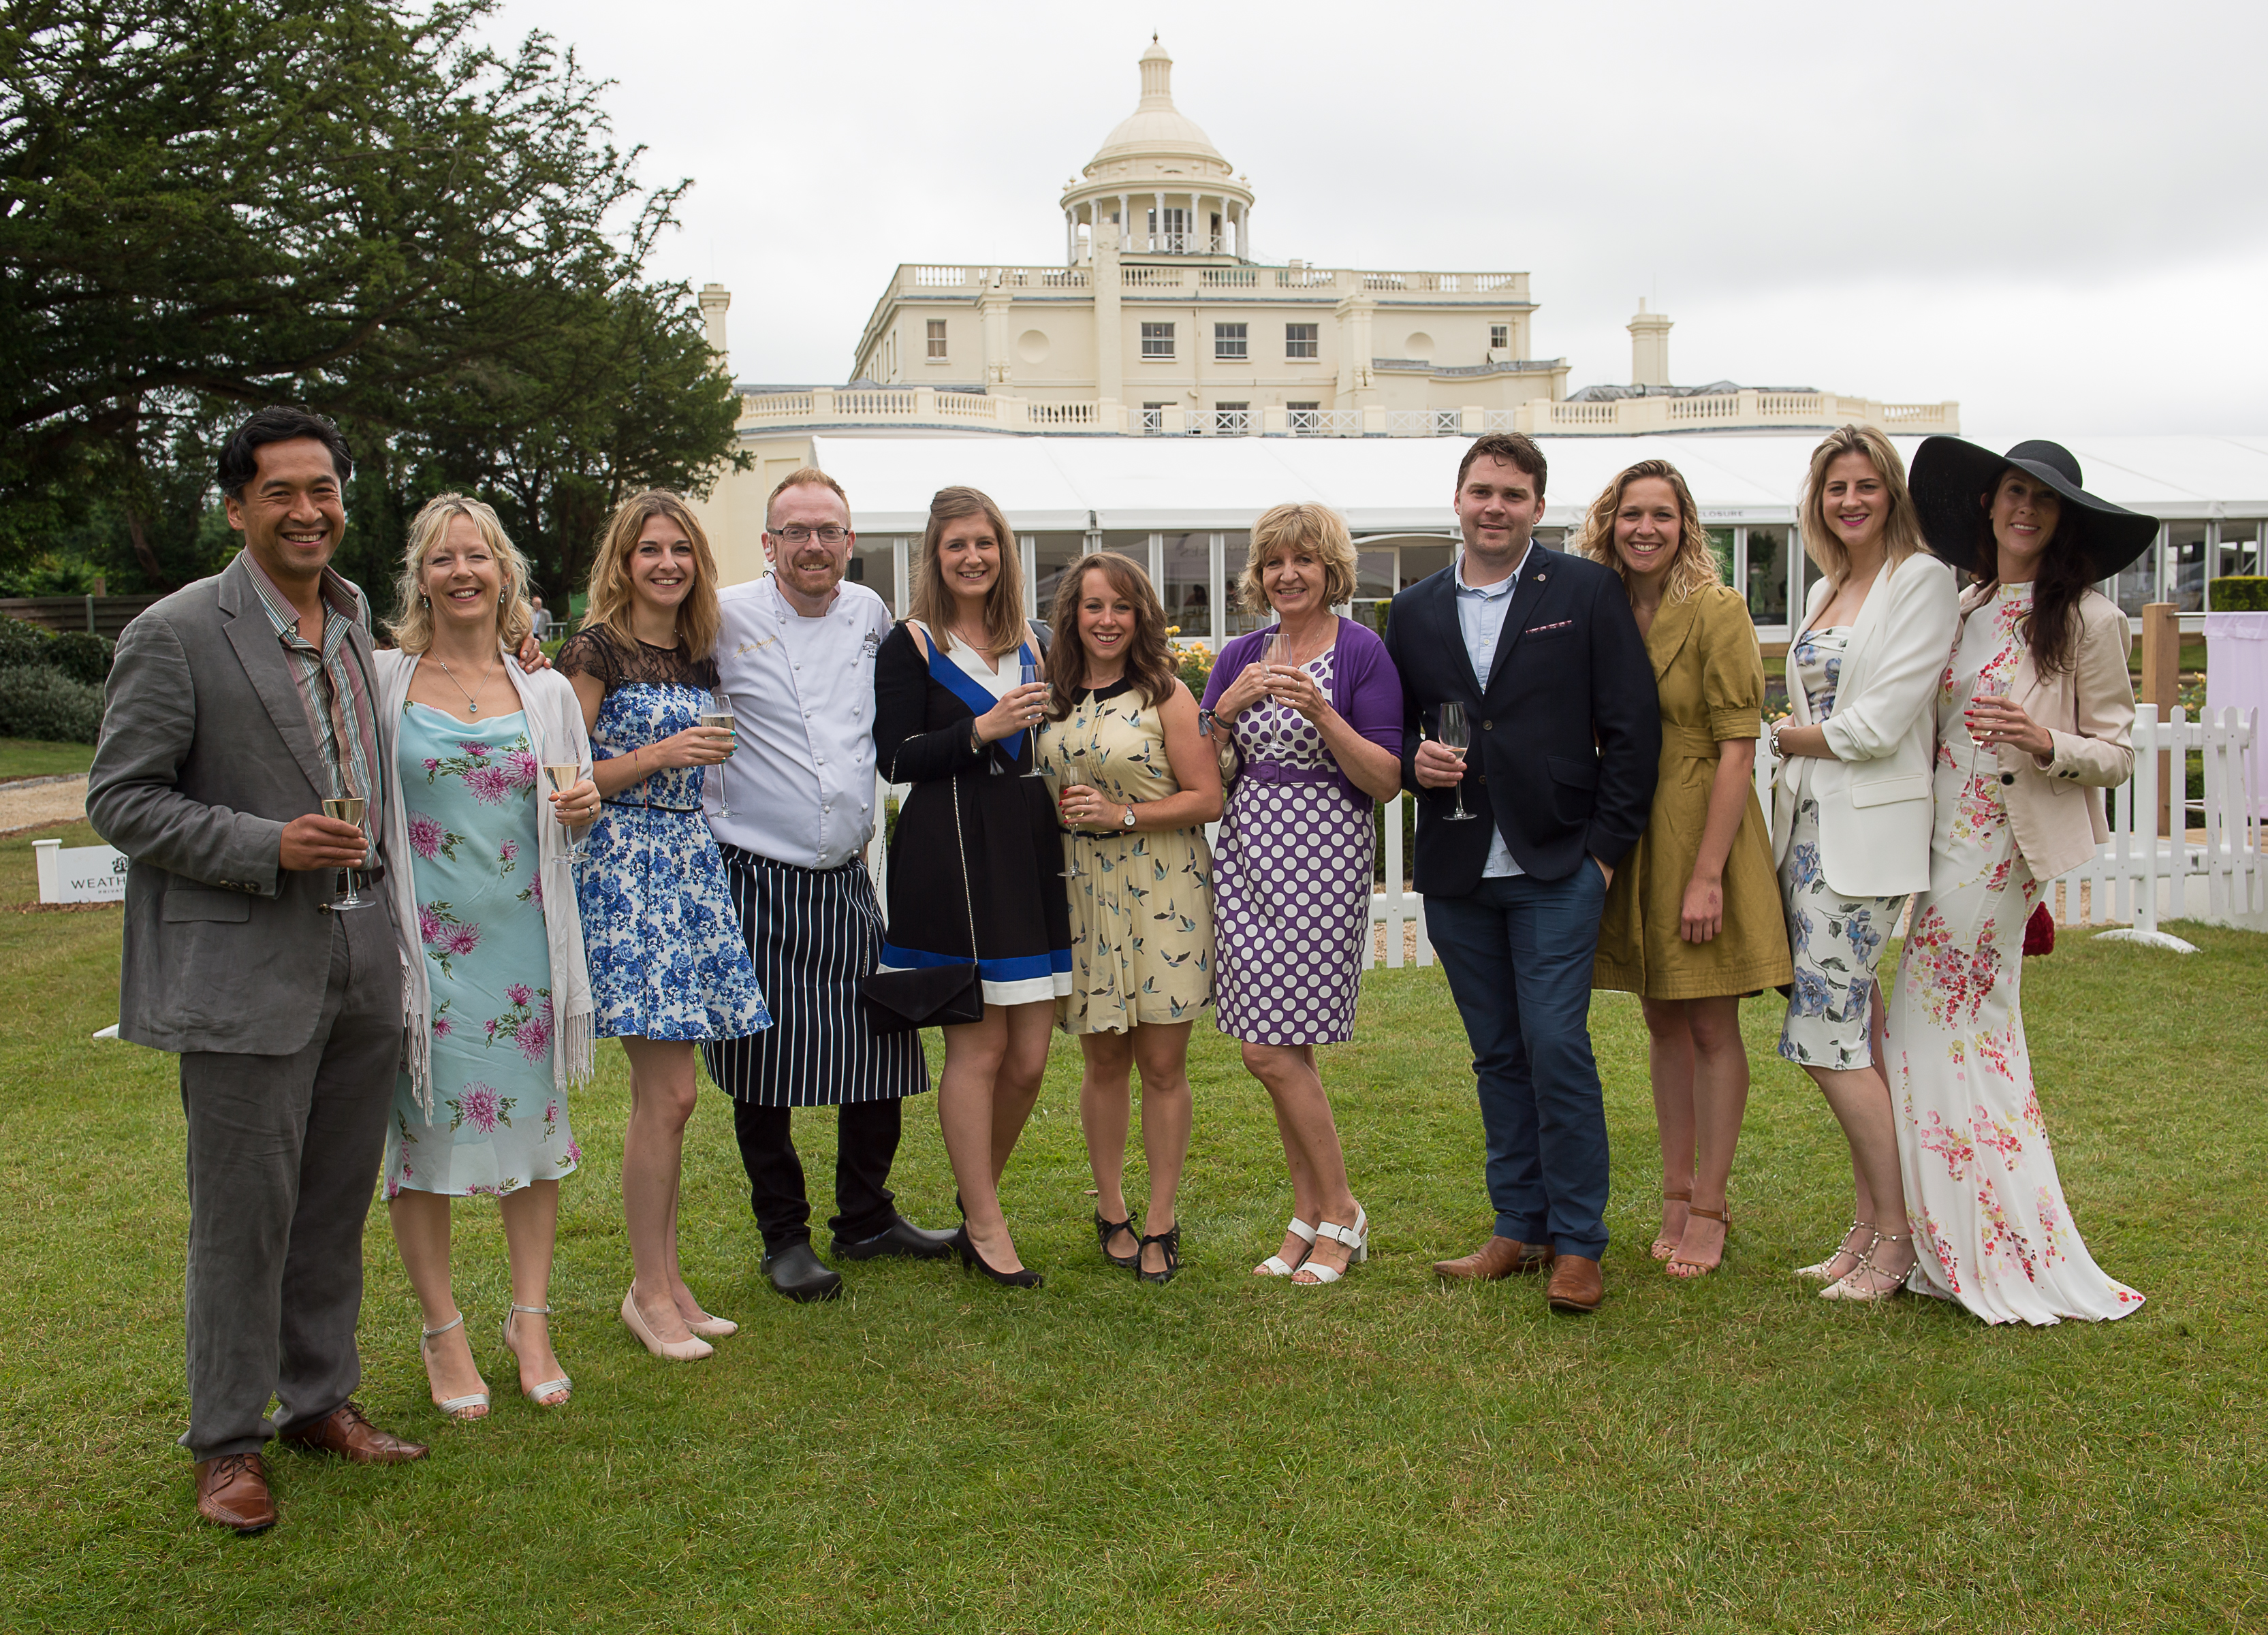 The Boodles Stoke Park 22 June 2016